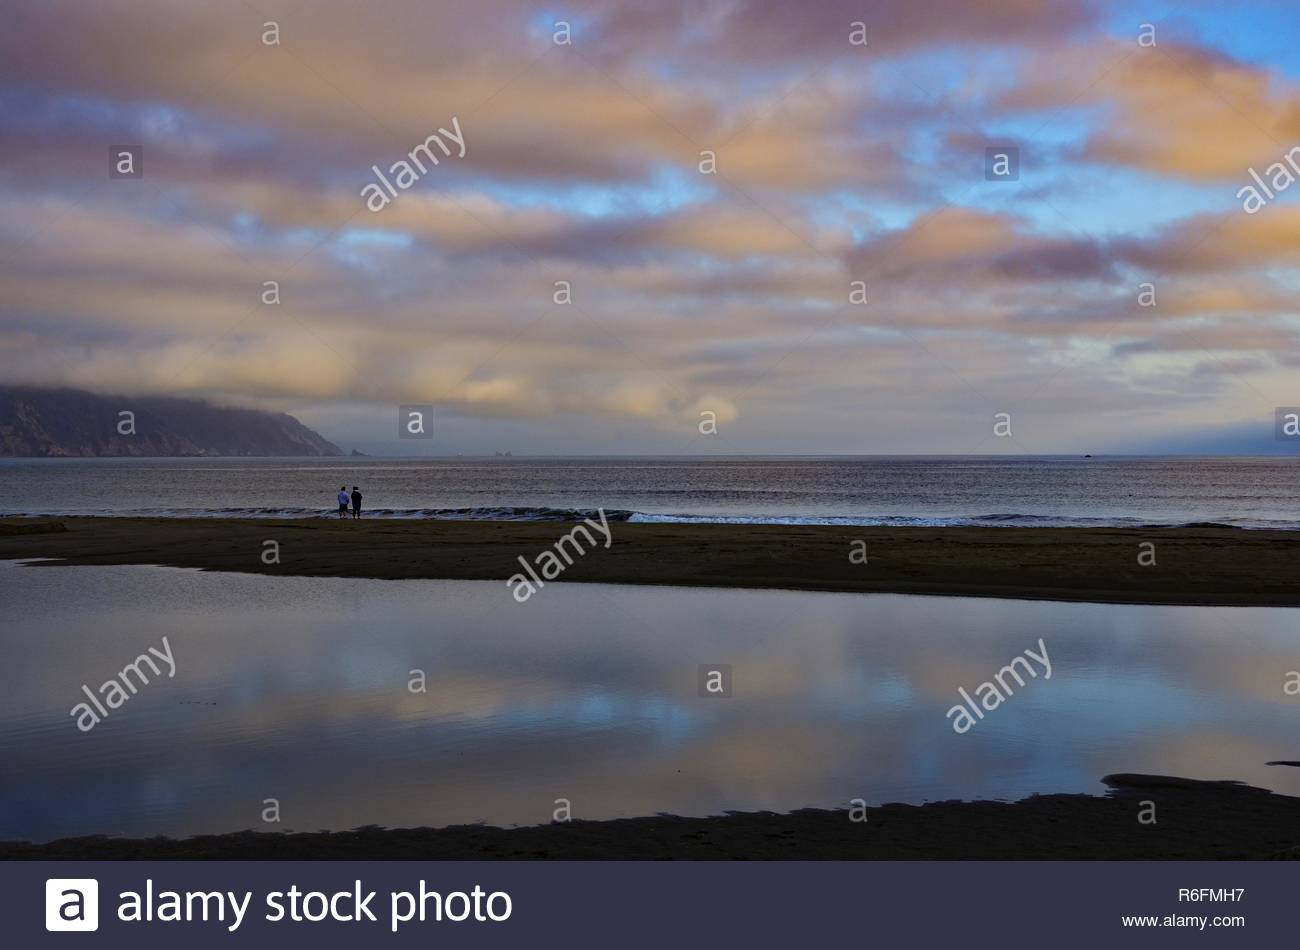 A couple is enjoying sunset at the Pacific coast of Crescent City in California - Stock Image